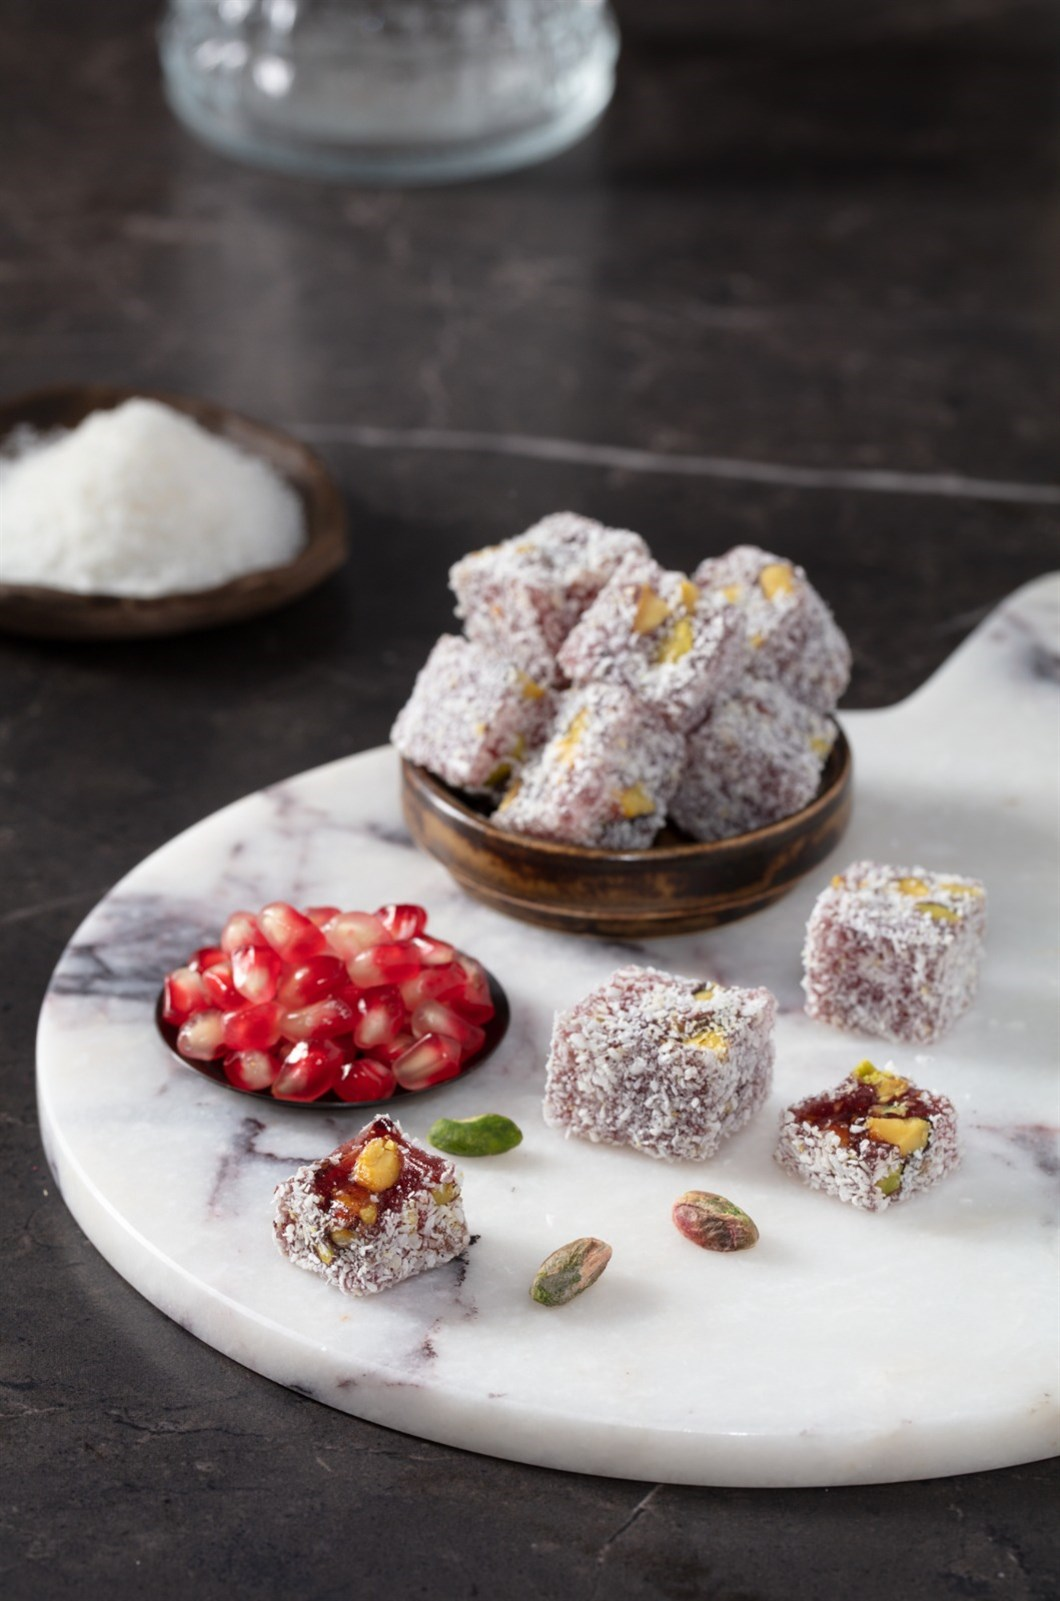 COCONUT COVEREDTURKISH DELIGHT WITH WALNUT AND FIG 650 GR